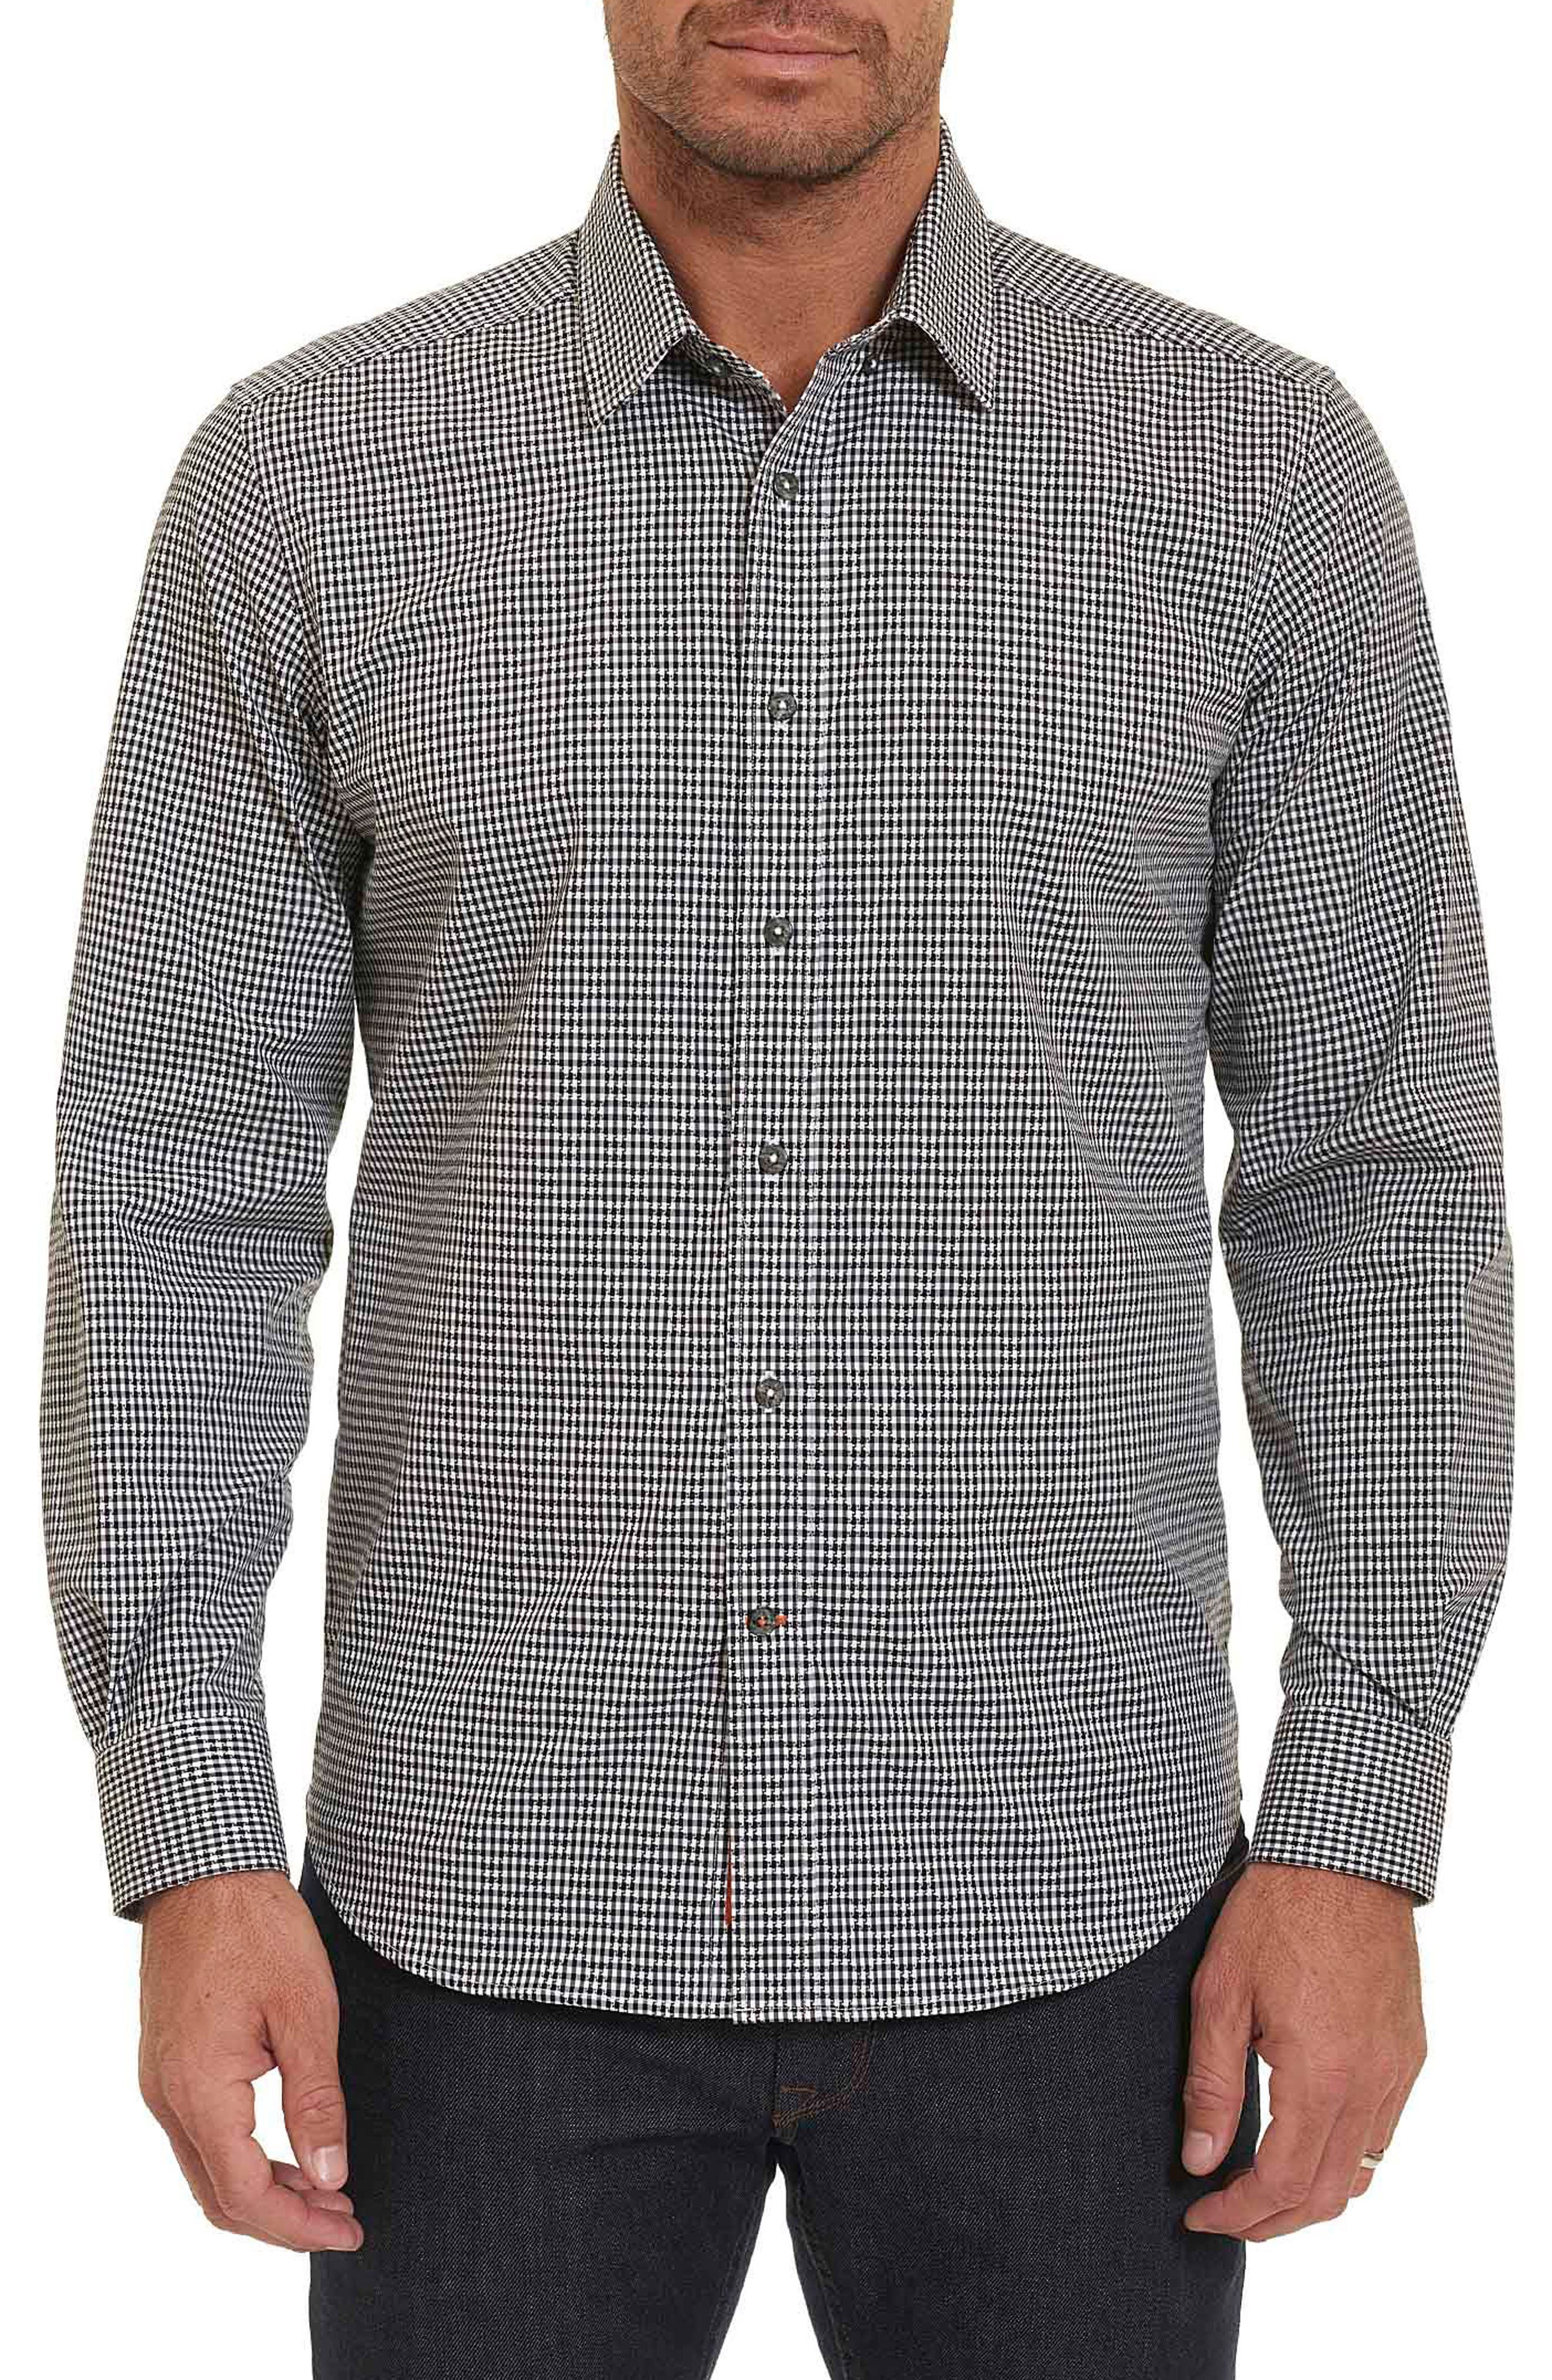 Wade Tailored Fit Check Sport Shirt,                         Main,                         color, 001